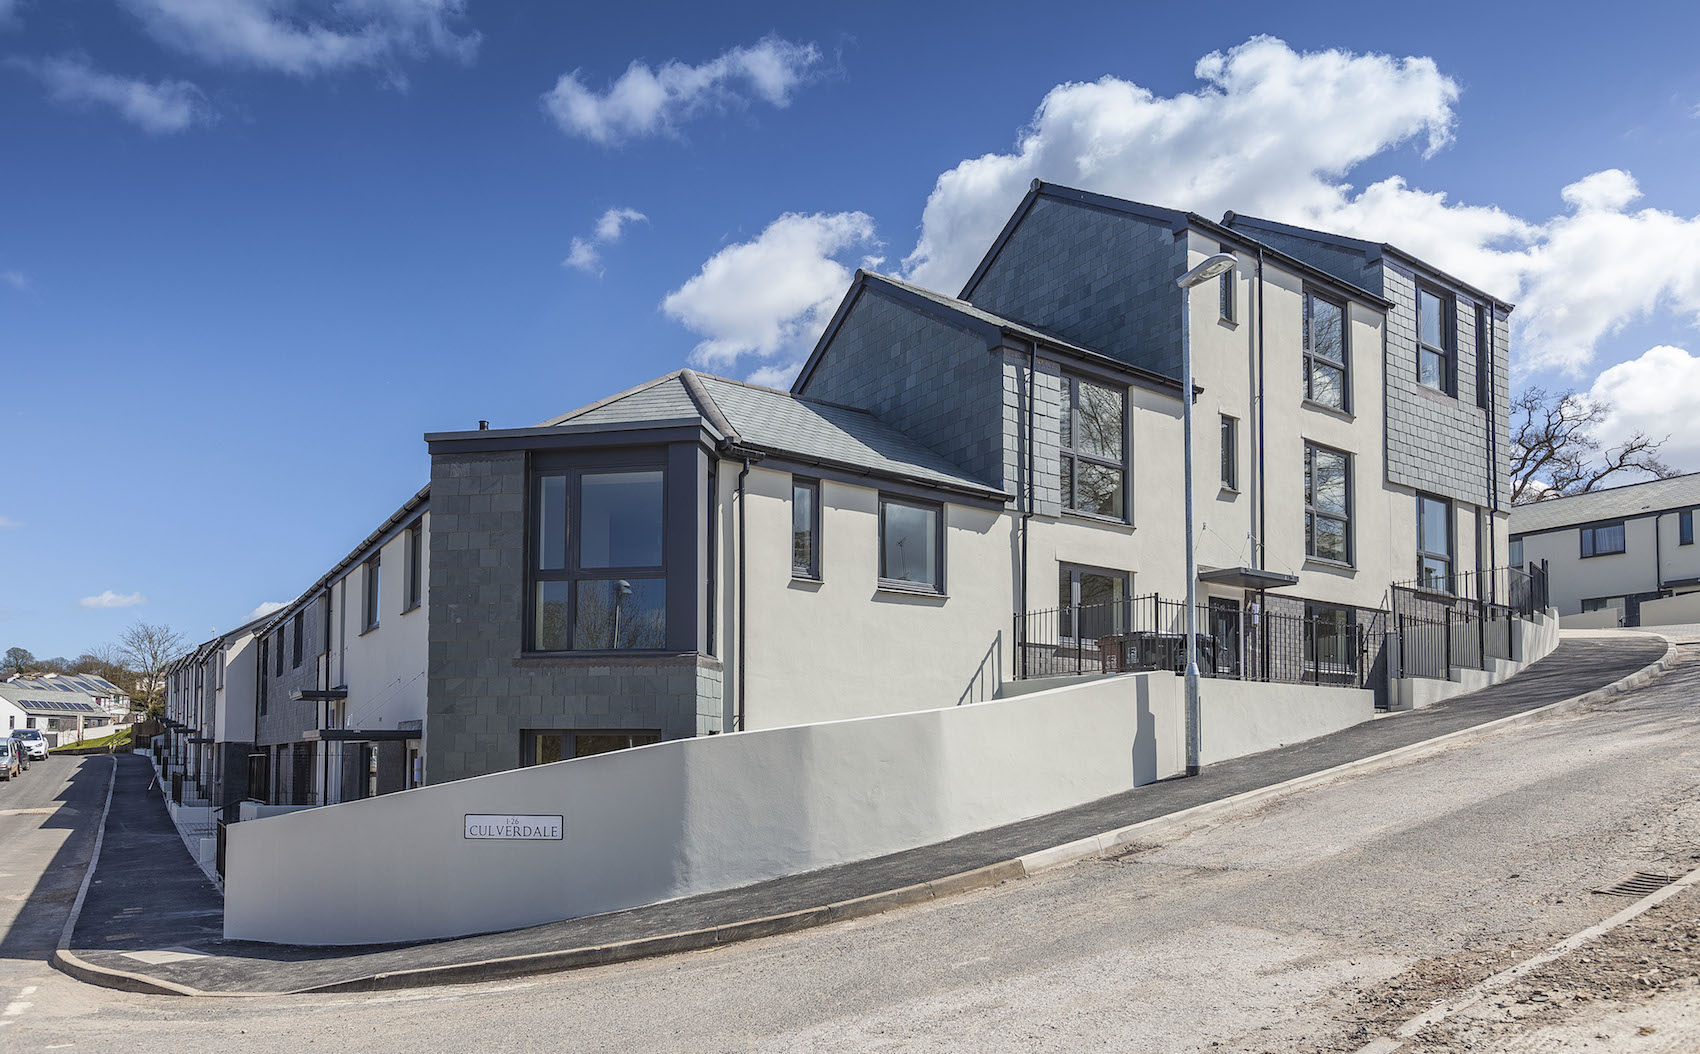 Captivating ... Homes Code 4 And Well Above Current Regulatory Standards, The 58 Houses  And Flats Sit On A Steeply Sloping Site In The Bridgetown Area Of Totnes,  ...